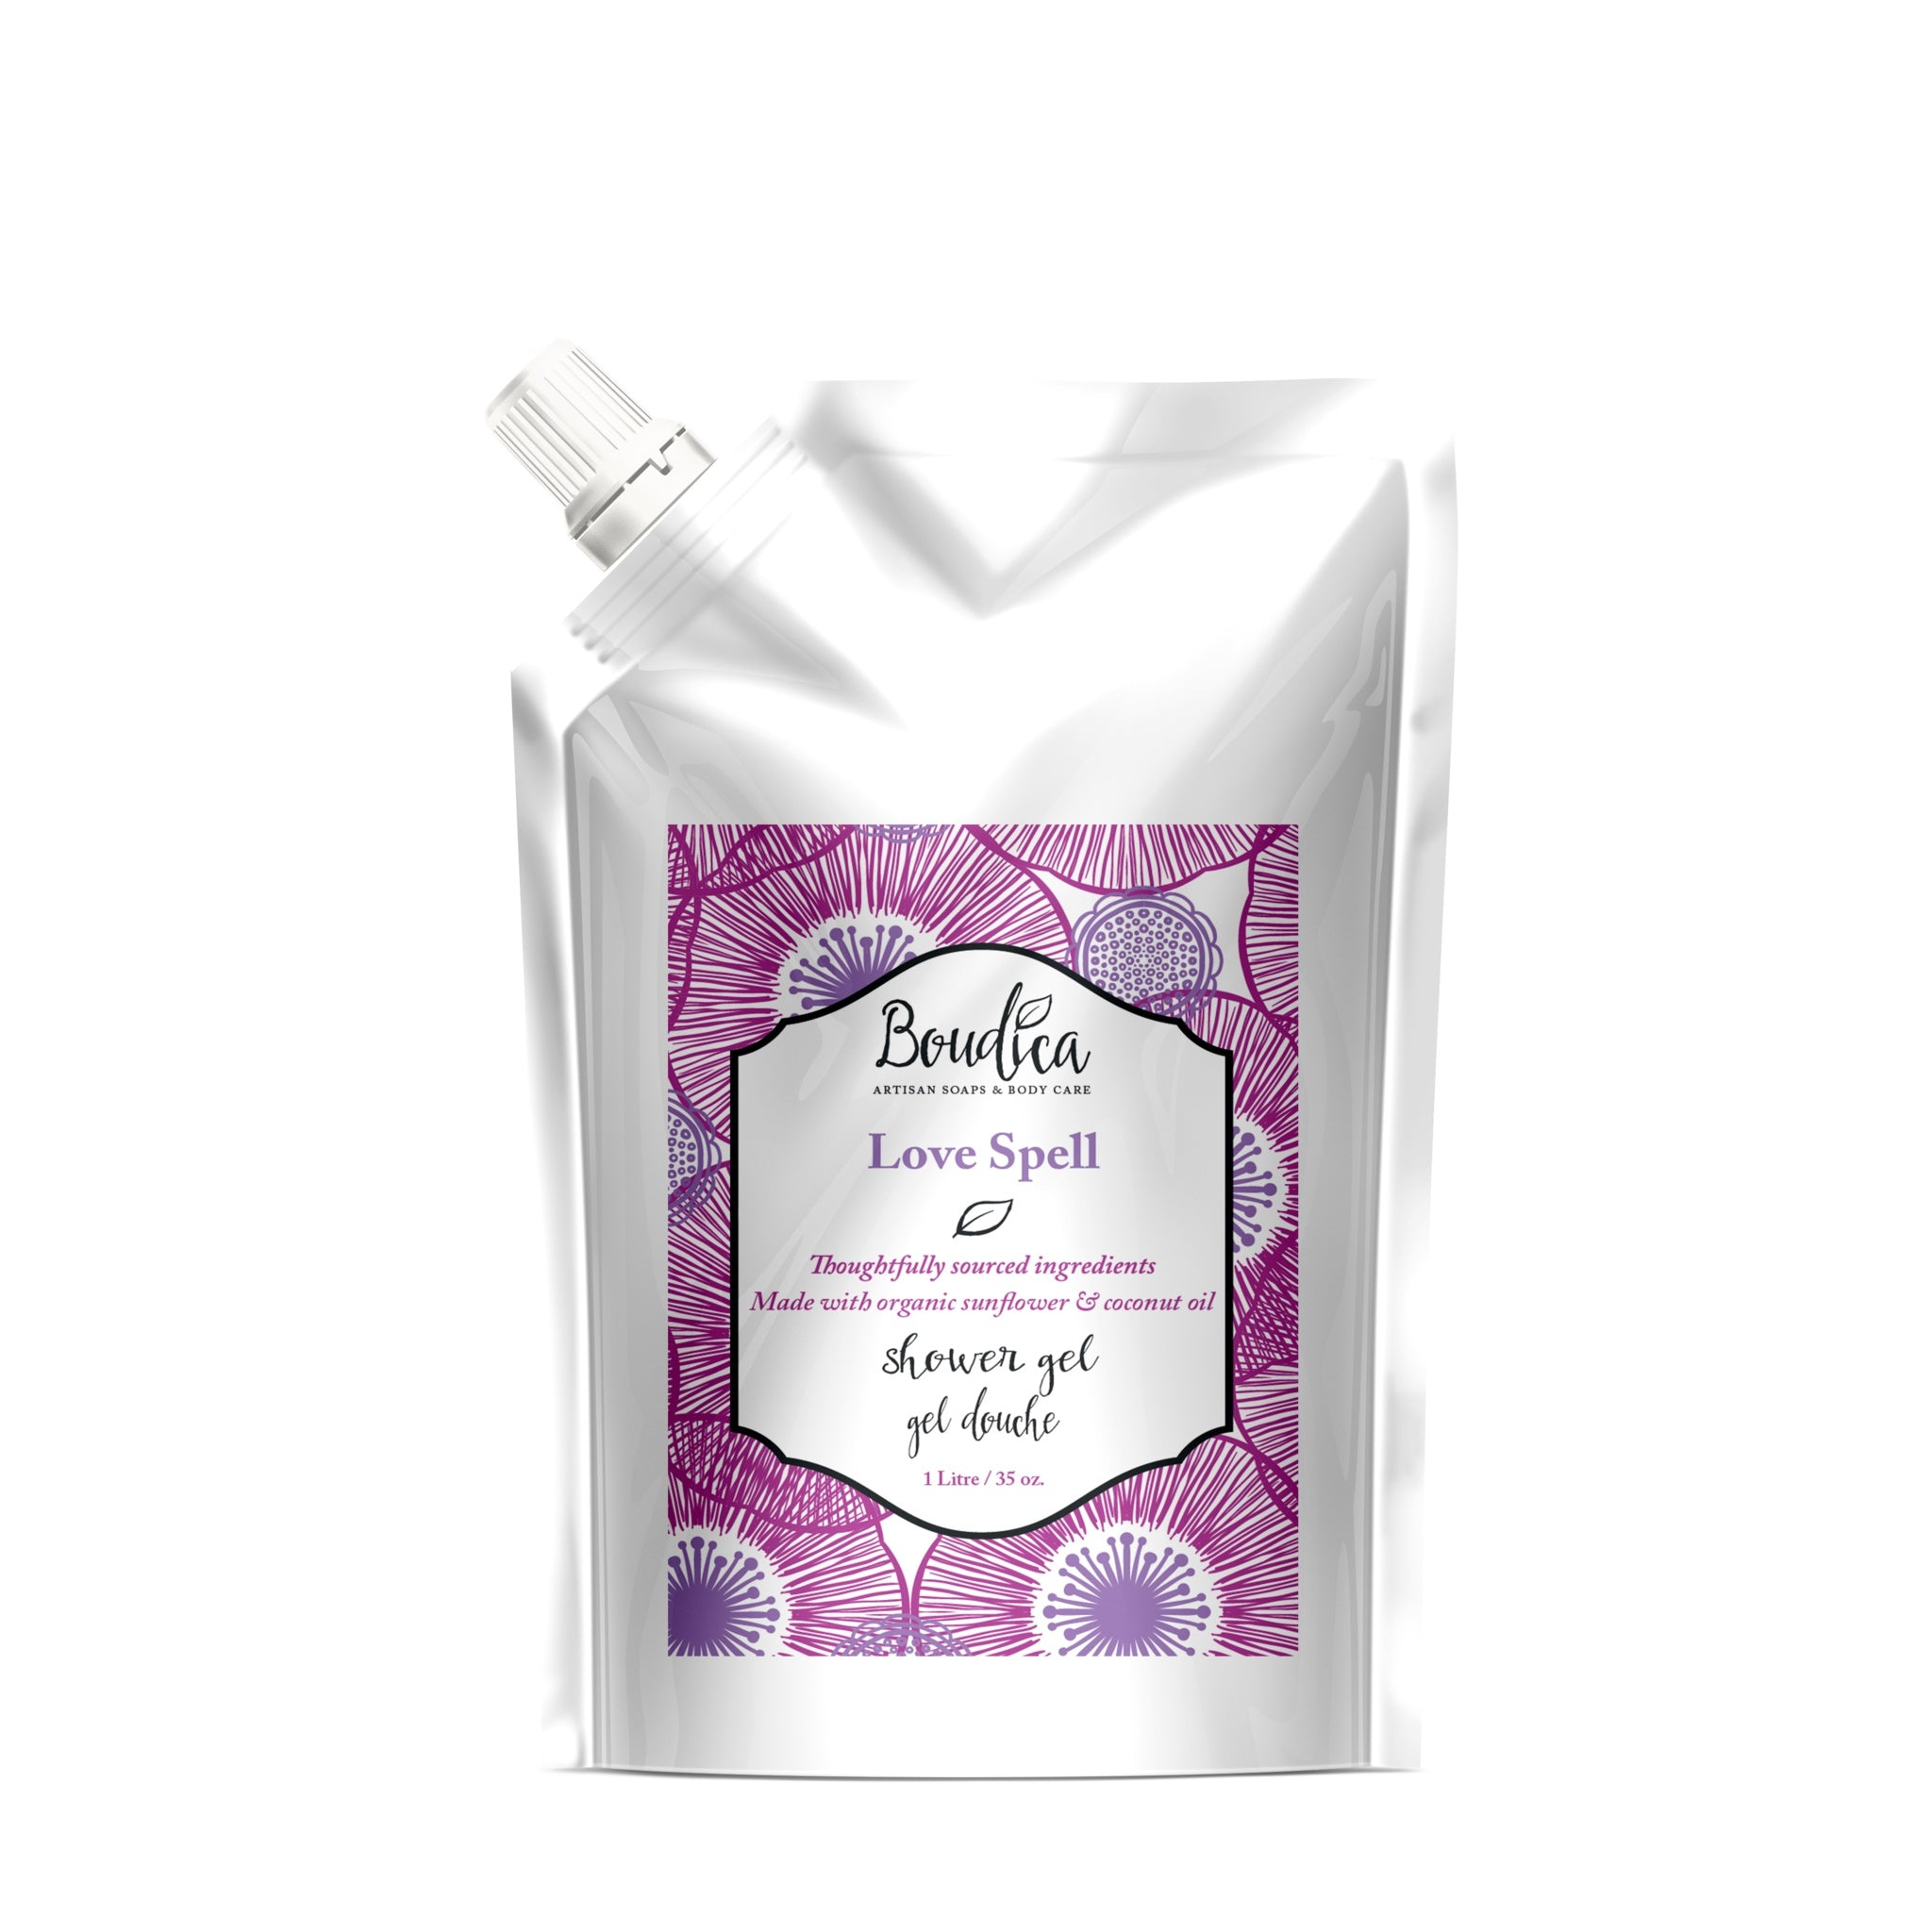 Love Spell shower gel - 1 Litre - Boudica Body Care